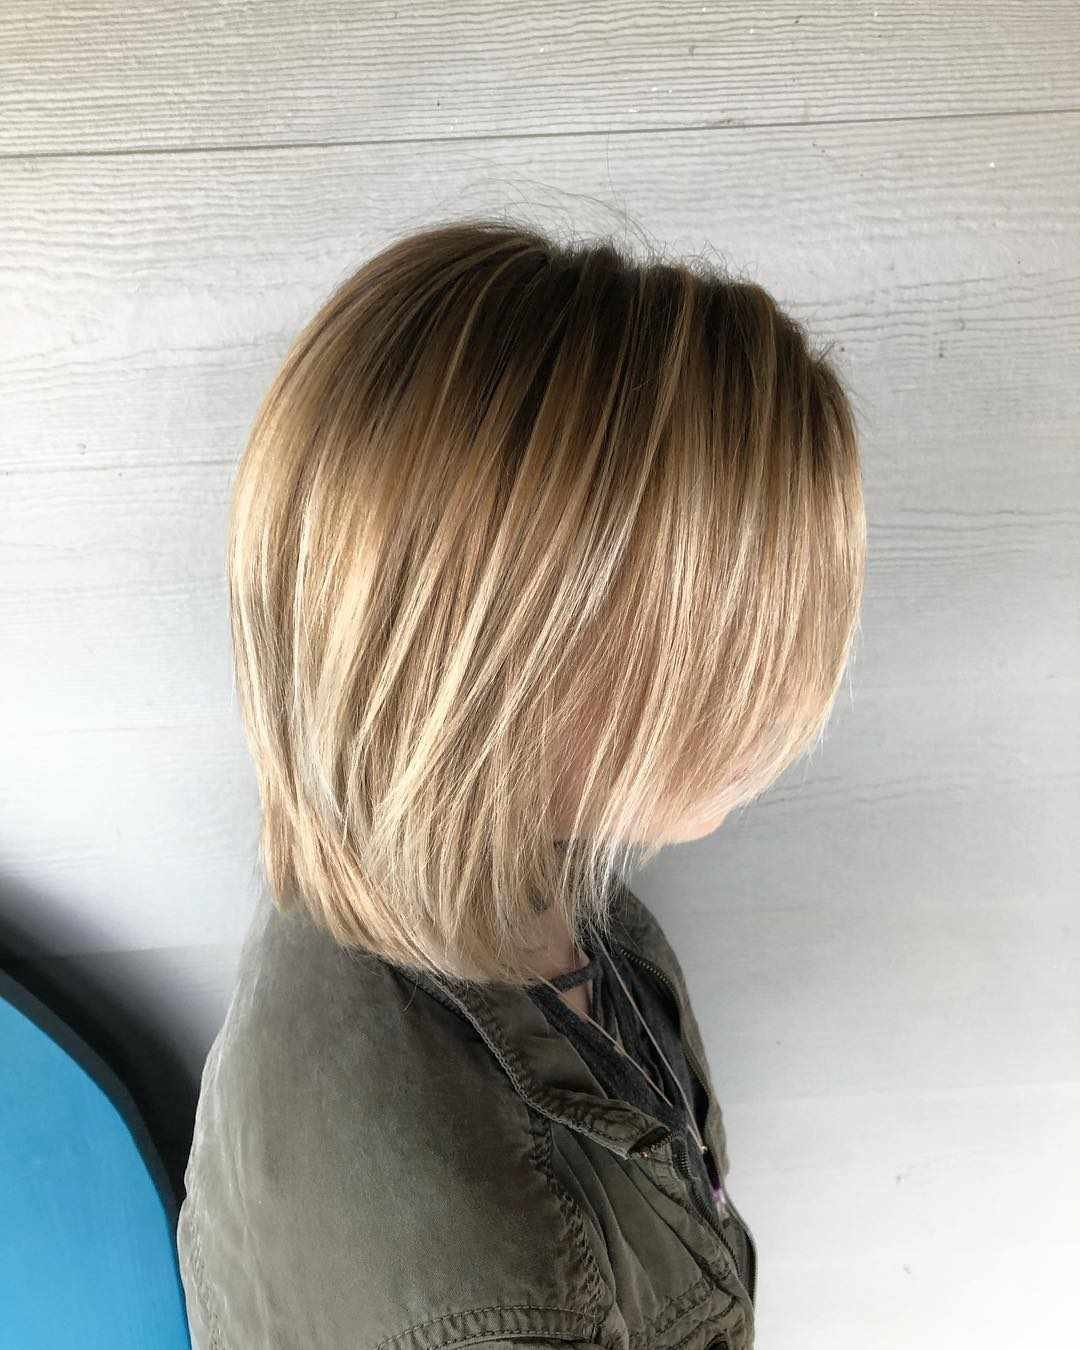 New 50 Popular Short Haircuts For Women In 2019 » Hairstyles 2019 Ideas With Pictures